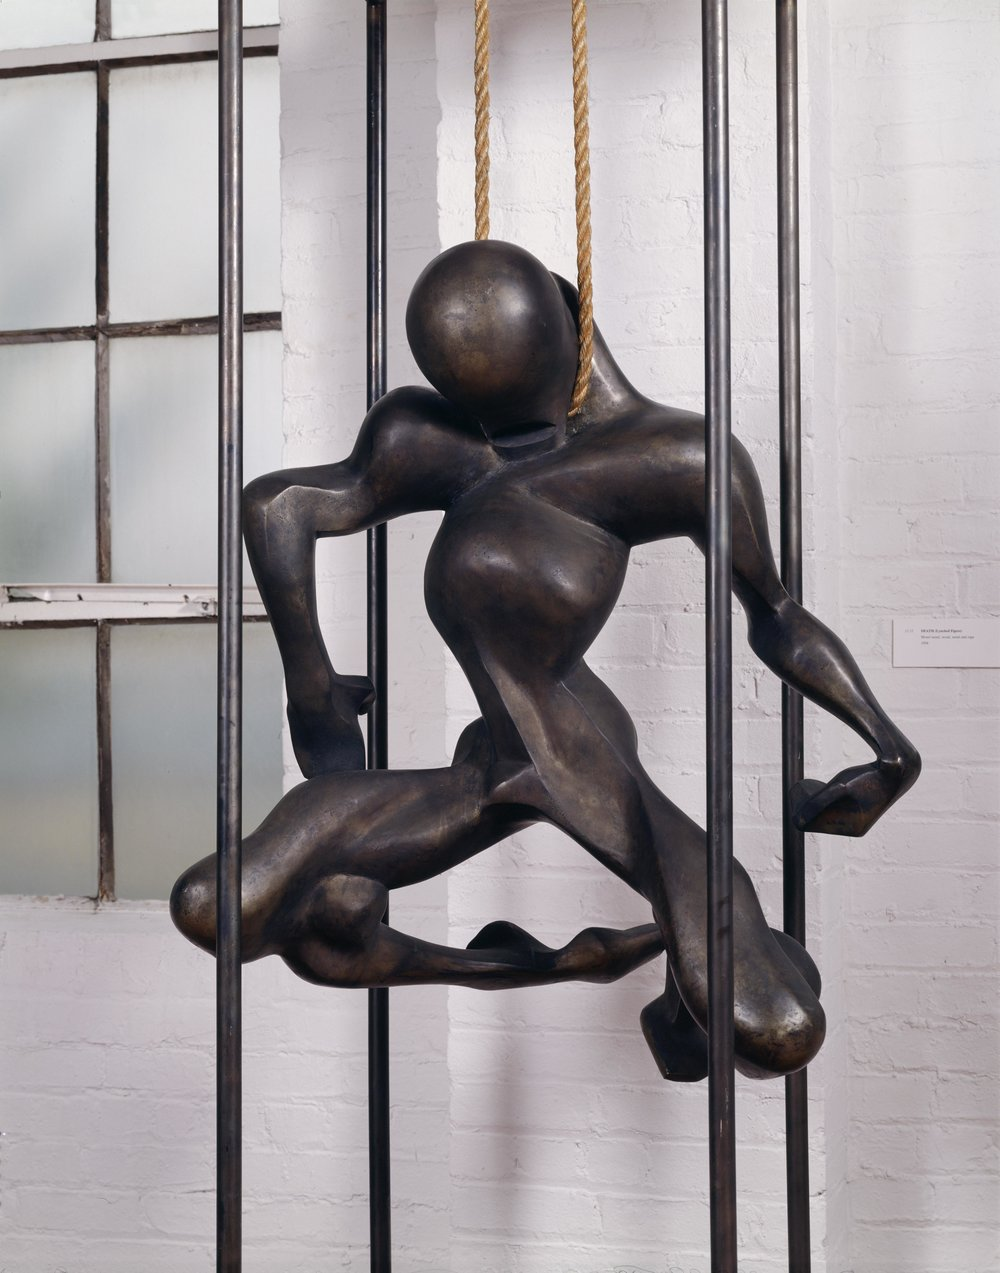 Death (Lynched Figure), 1934. Isamu Noguchi. Monel metal, steel, wood, rope. 88 3/4 x 31 7/8 x 22 1/8 in. Collection of The Isamu Noguchi Foundation and Garden Museum, New York. ©The Isamu Noguchi Foundation and Garden Museum, New York / Artist Rights Society [ARS]. Photo by Sara Wells.   Reproduction, including downloading of Isamu Noguchi works is prohibited by copyright laws and international conventions without the express written permission of Artists Rights Society (ARS), New York.